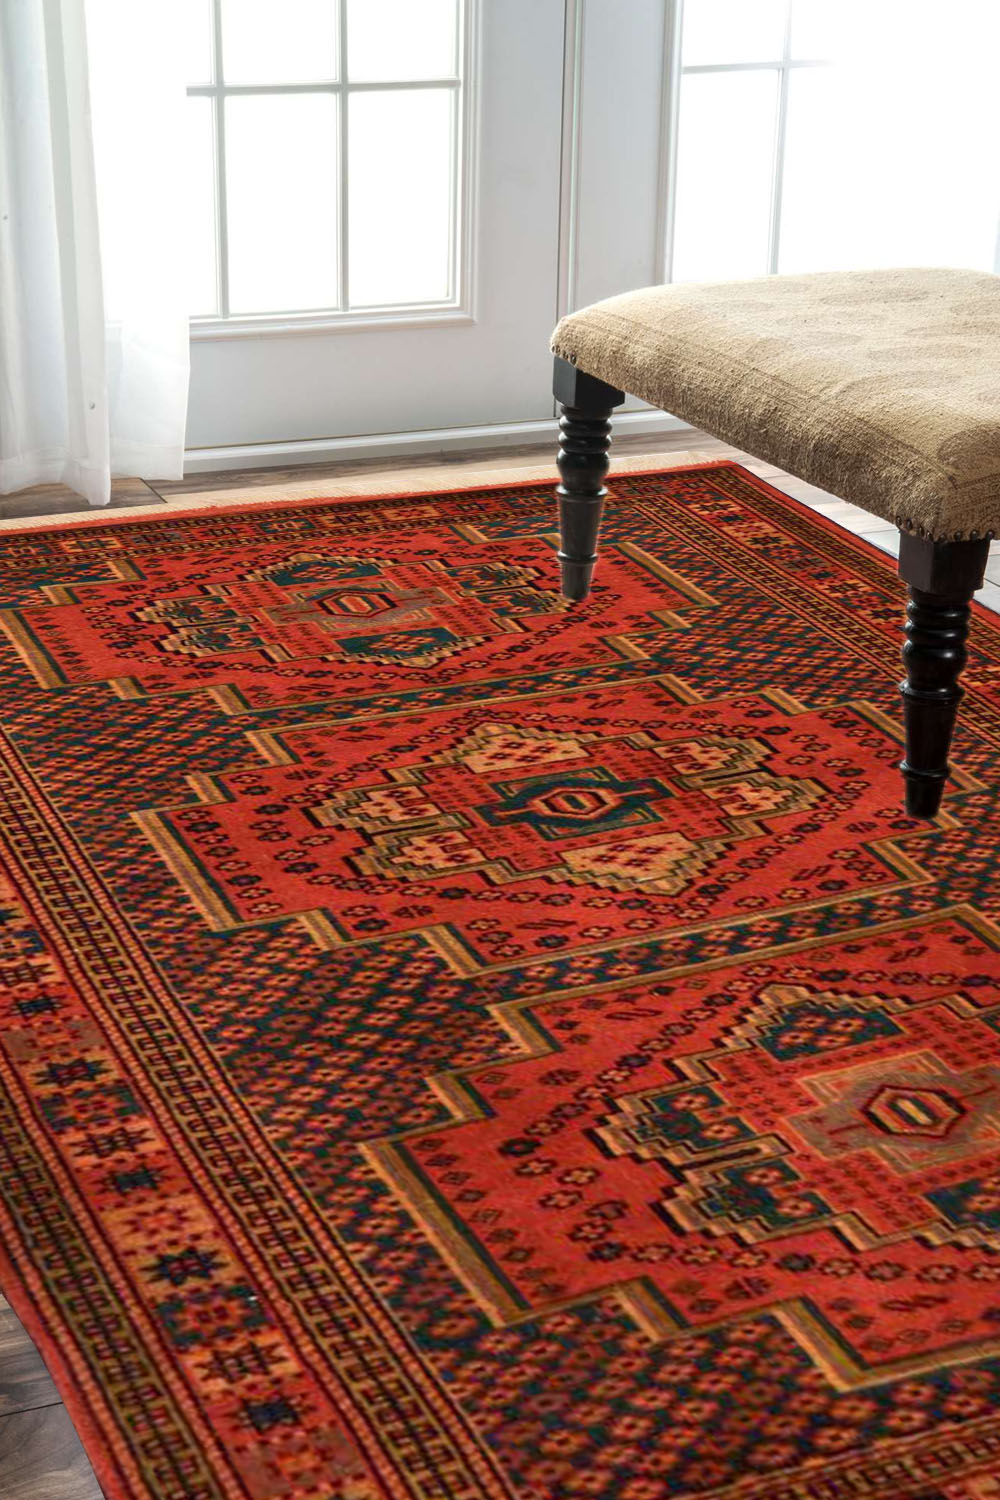 Turkish Afghan Area Rugs And Turkish Afghan Carpet Online